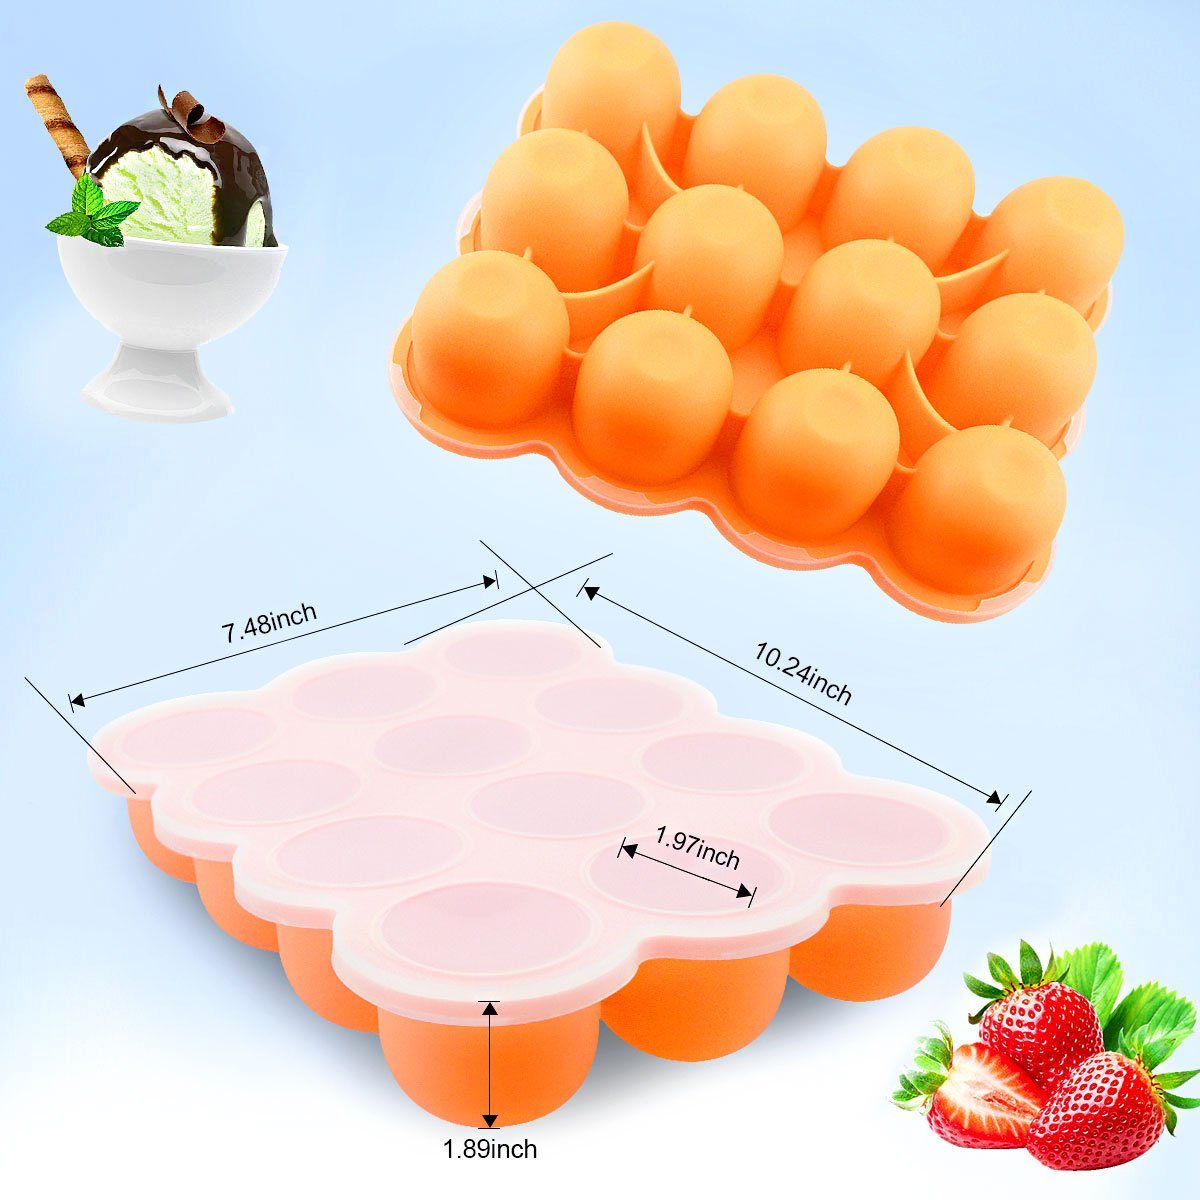 Amazon.com : Silicone Freezer Tray for Baby Food Storage 2 Pack- Reusable Baby Food Storage Containers - Vegetable & Fruit Purees and Breast Milk - BPA FREE ...